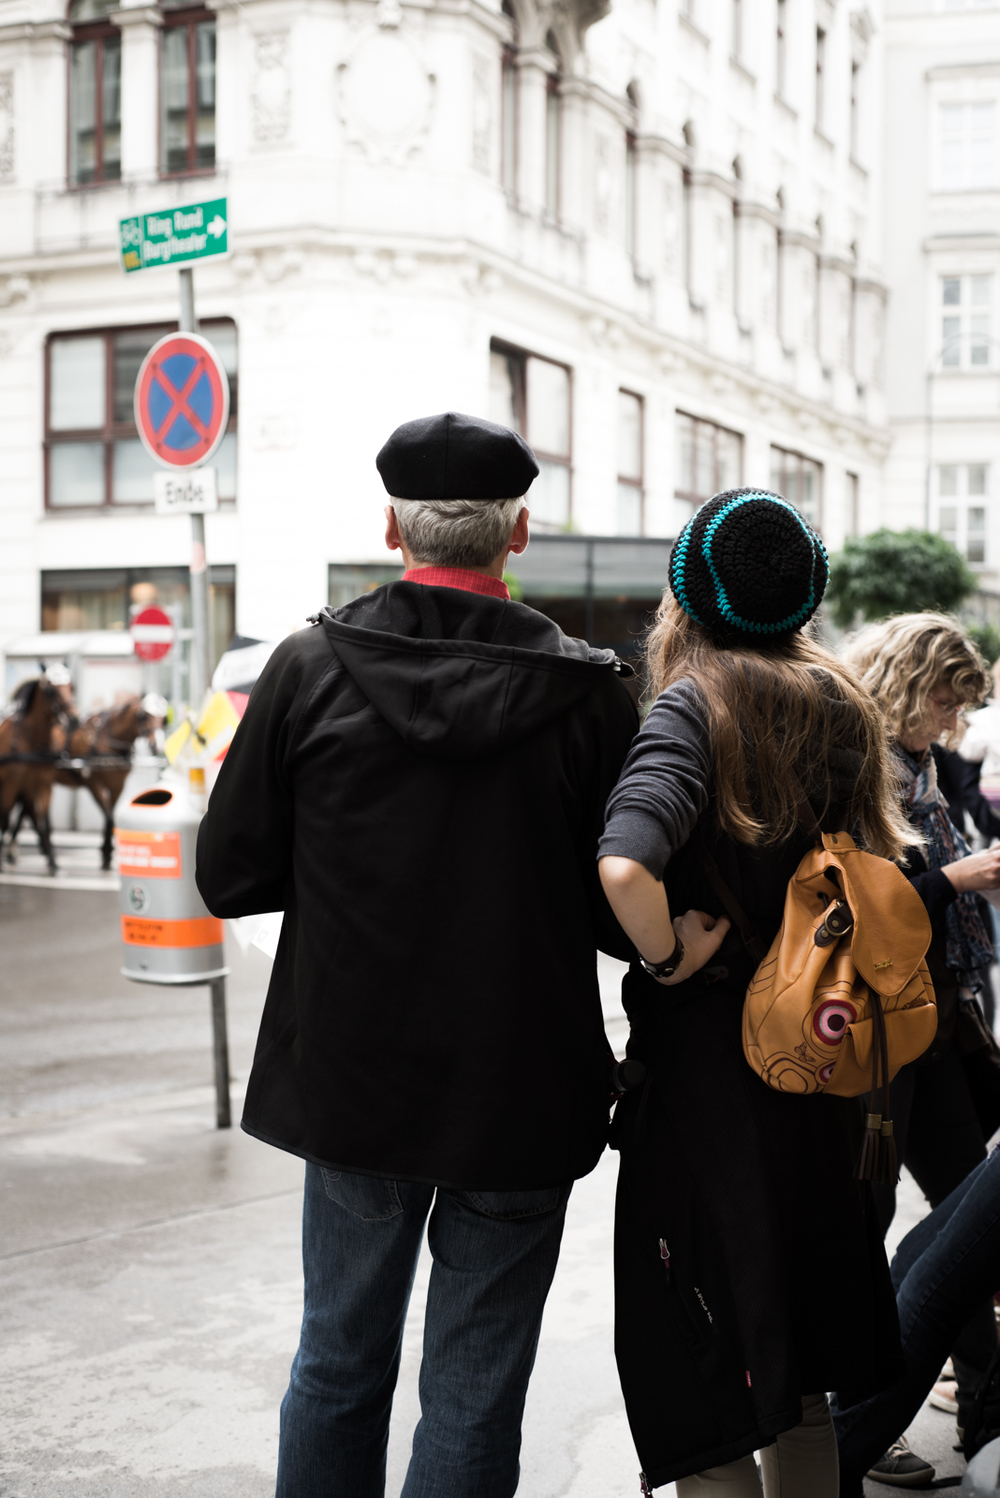 Project 365: #242 - Tourists